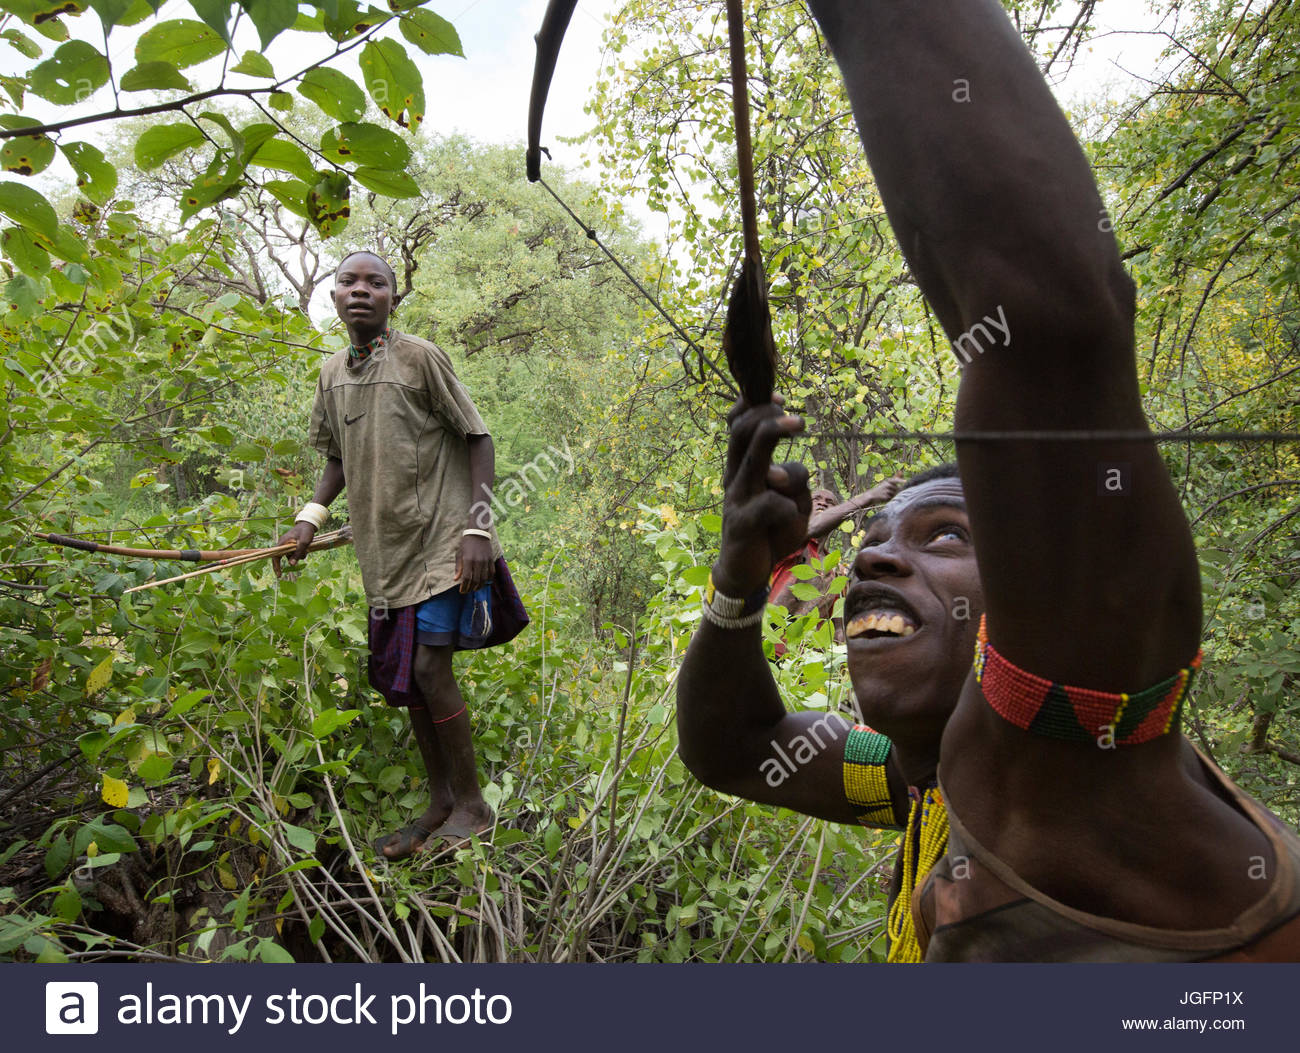 Hadza men hunting with bows and arrows. - Stock Image